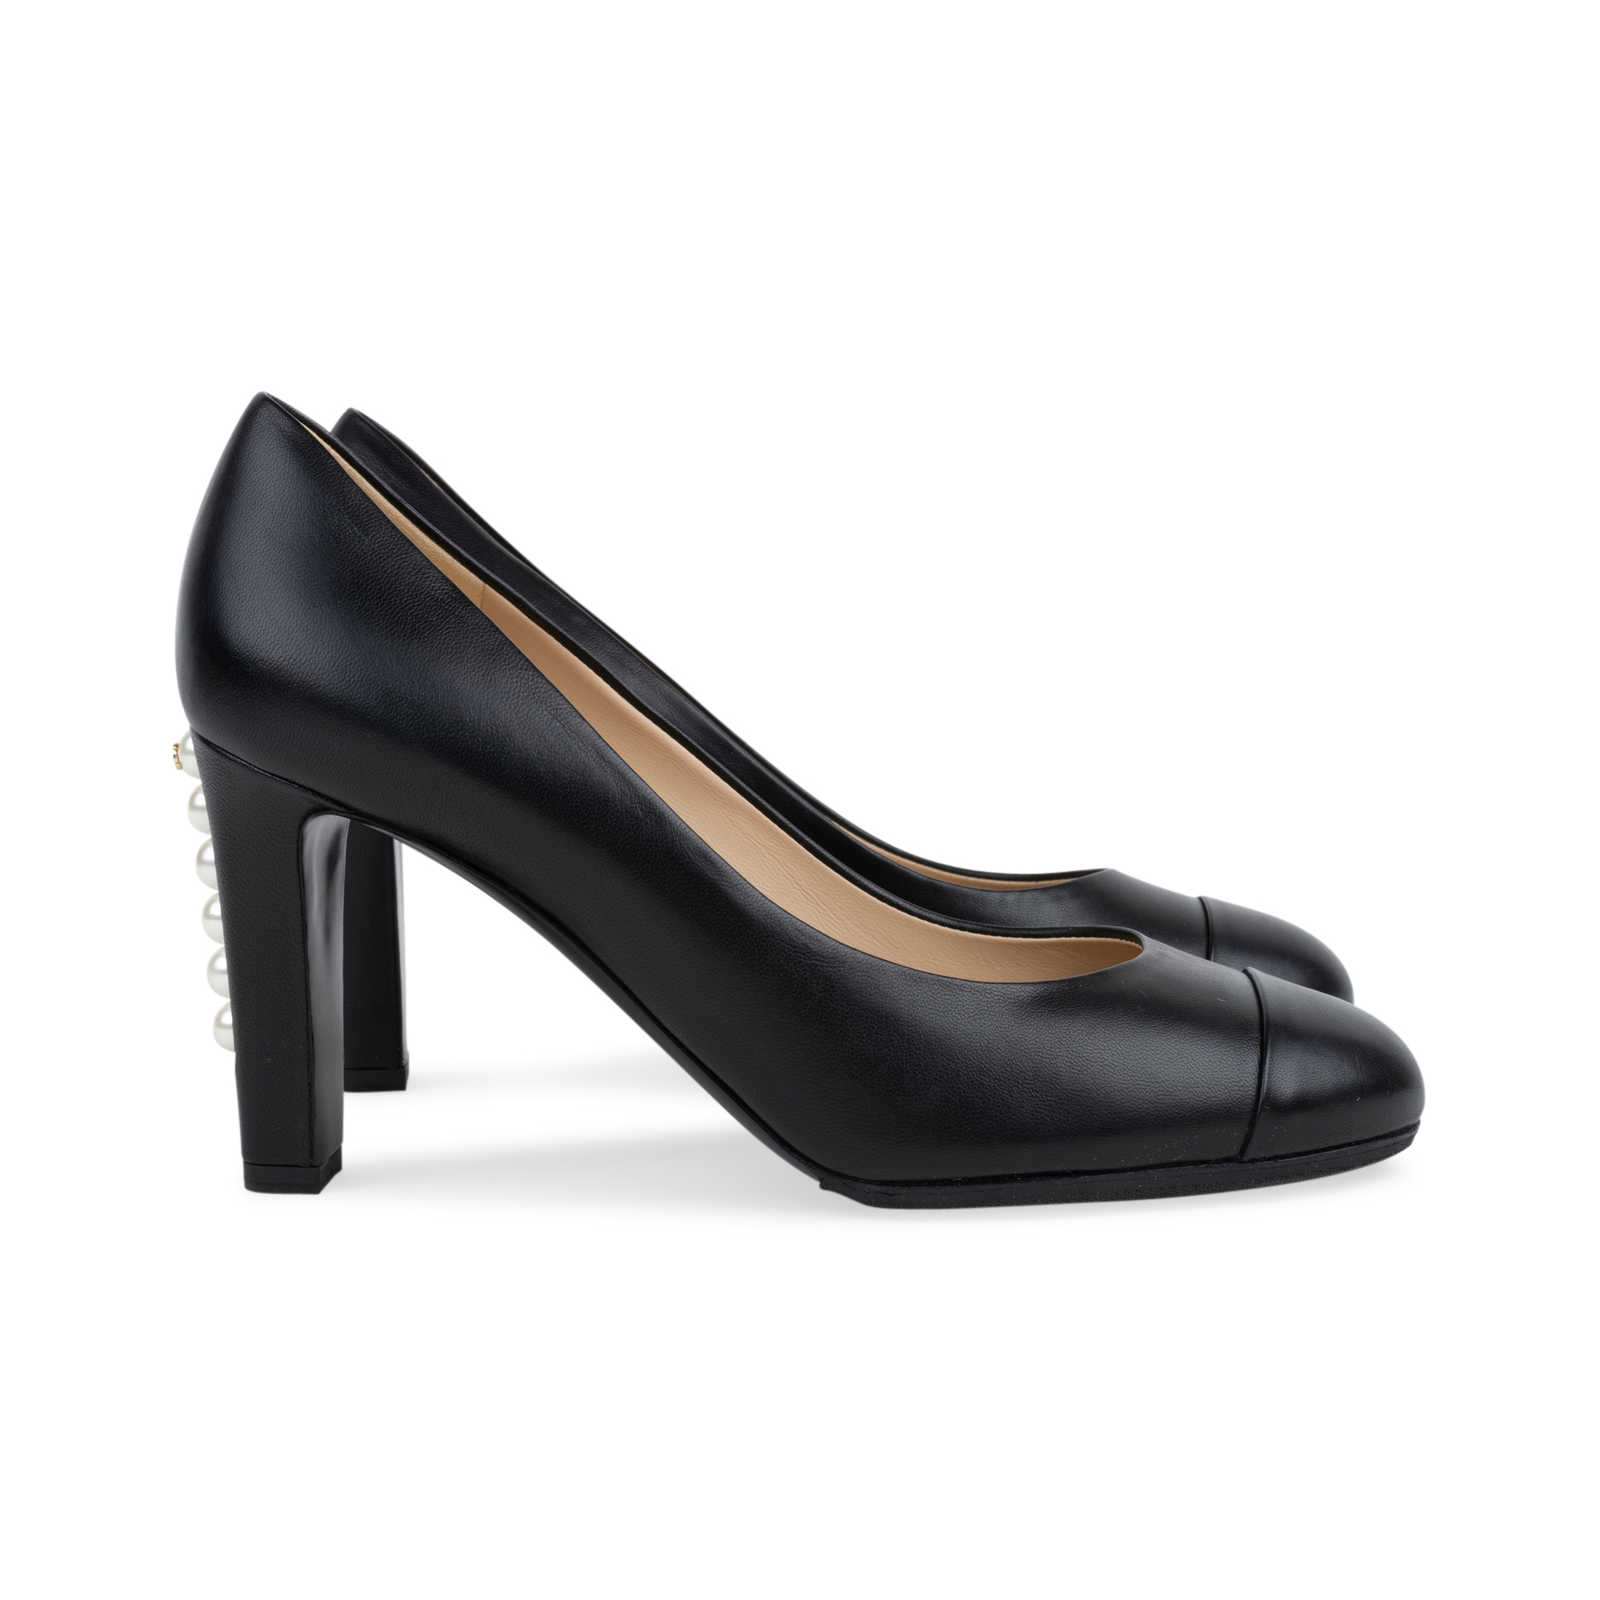 cfd677b5470f ... Authentic Second Hand Chanel Pearl Heel Pumps (PSS-566-00080) -  Thumbnail ...